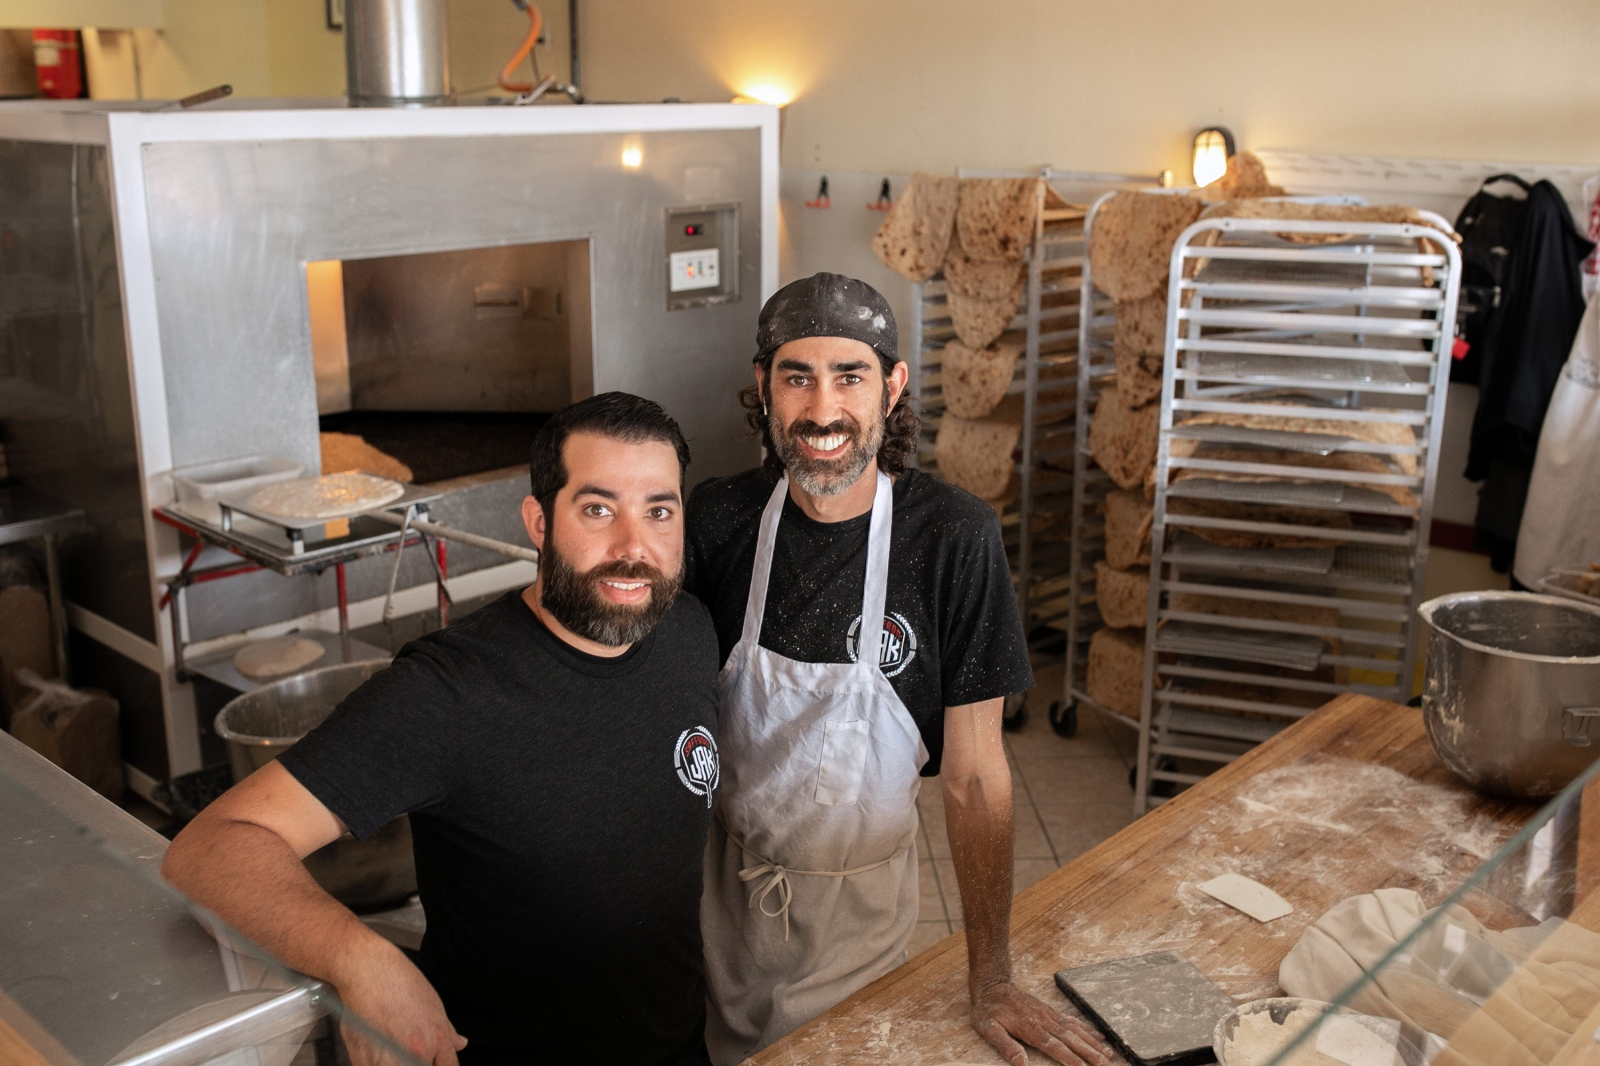 Brothers Jaymes and Jayson Khademi stand flour-covered in their Saffron Jak kitchen in Phoenix, Ariz.